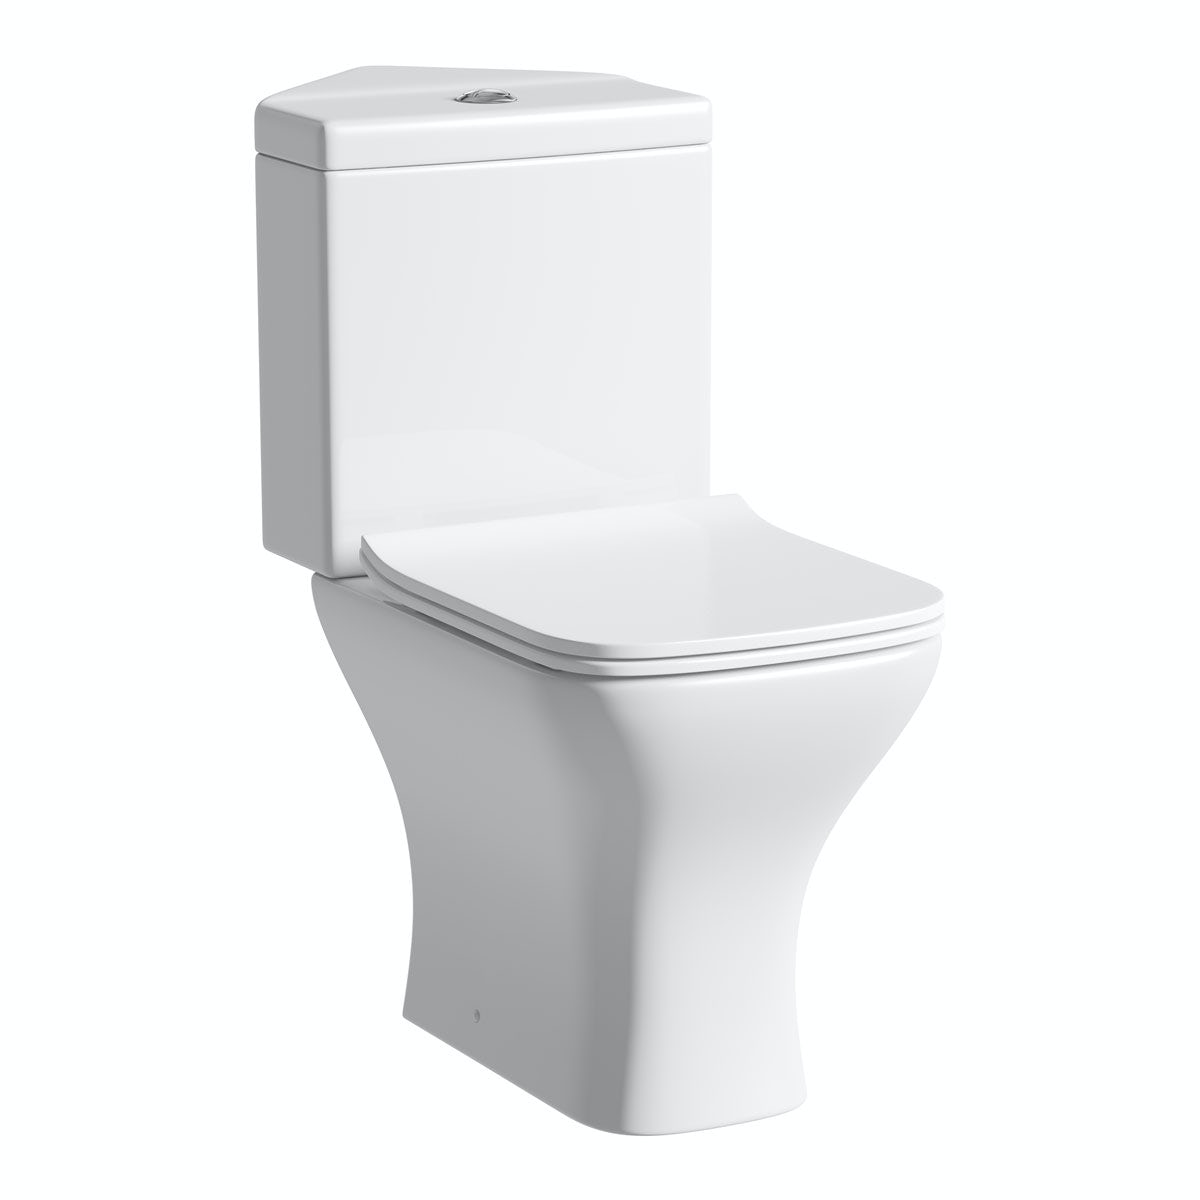 Orchard Derwent square compact corner close coupled toilet with slimline soft close toilet seat with pan connector